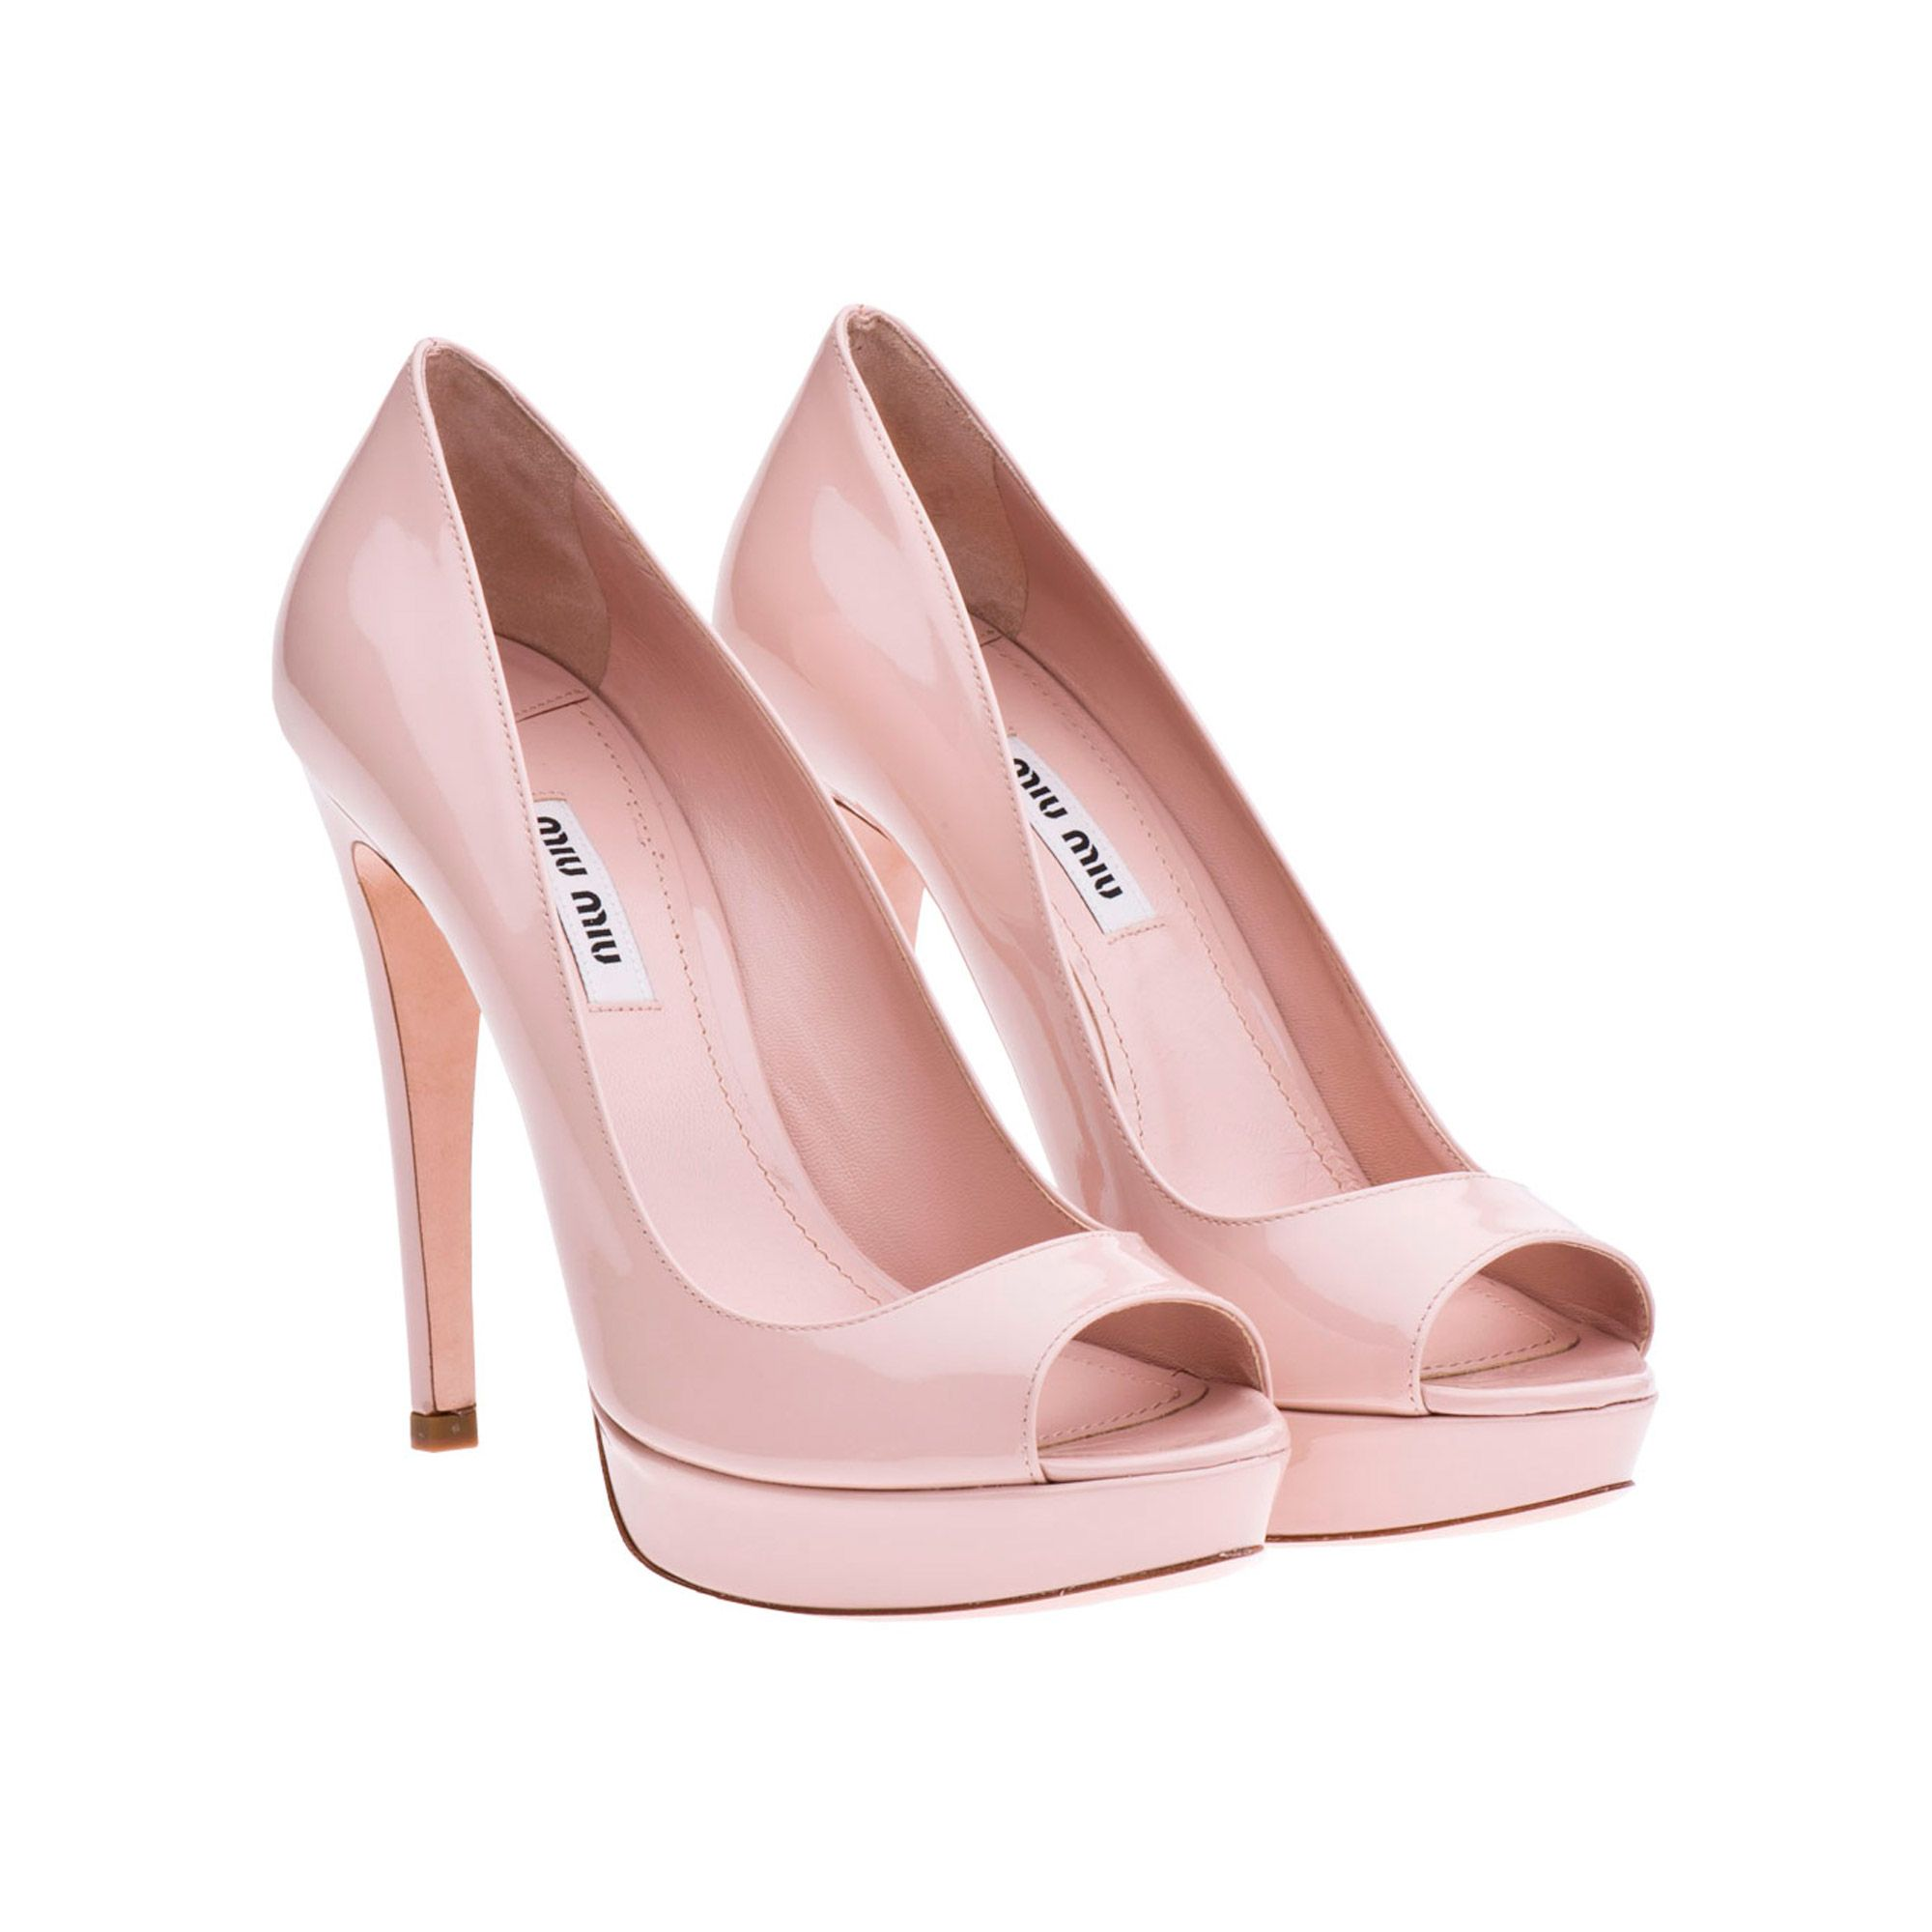 ad17fd091f8 Miu Miu patent leather open-toe platform pumps pale pink | Shotgun ...